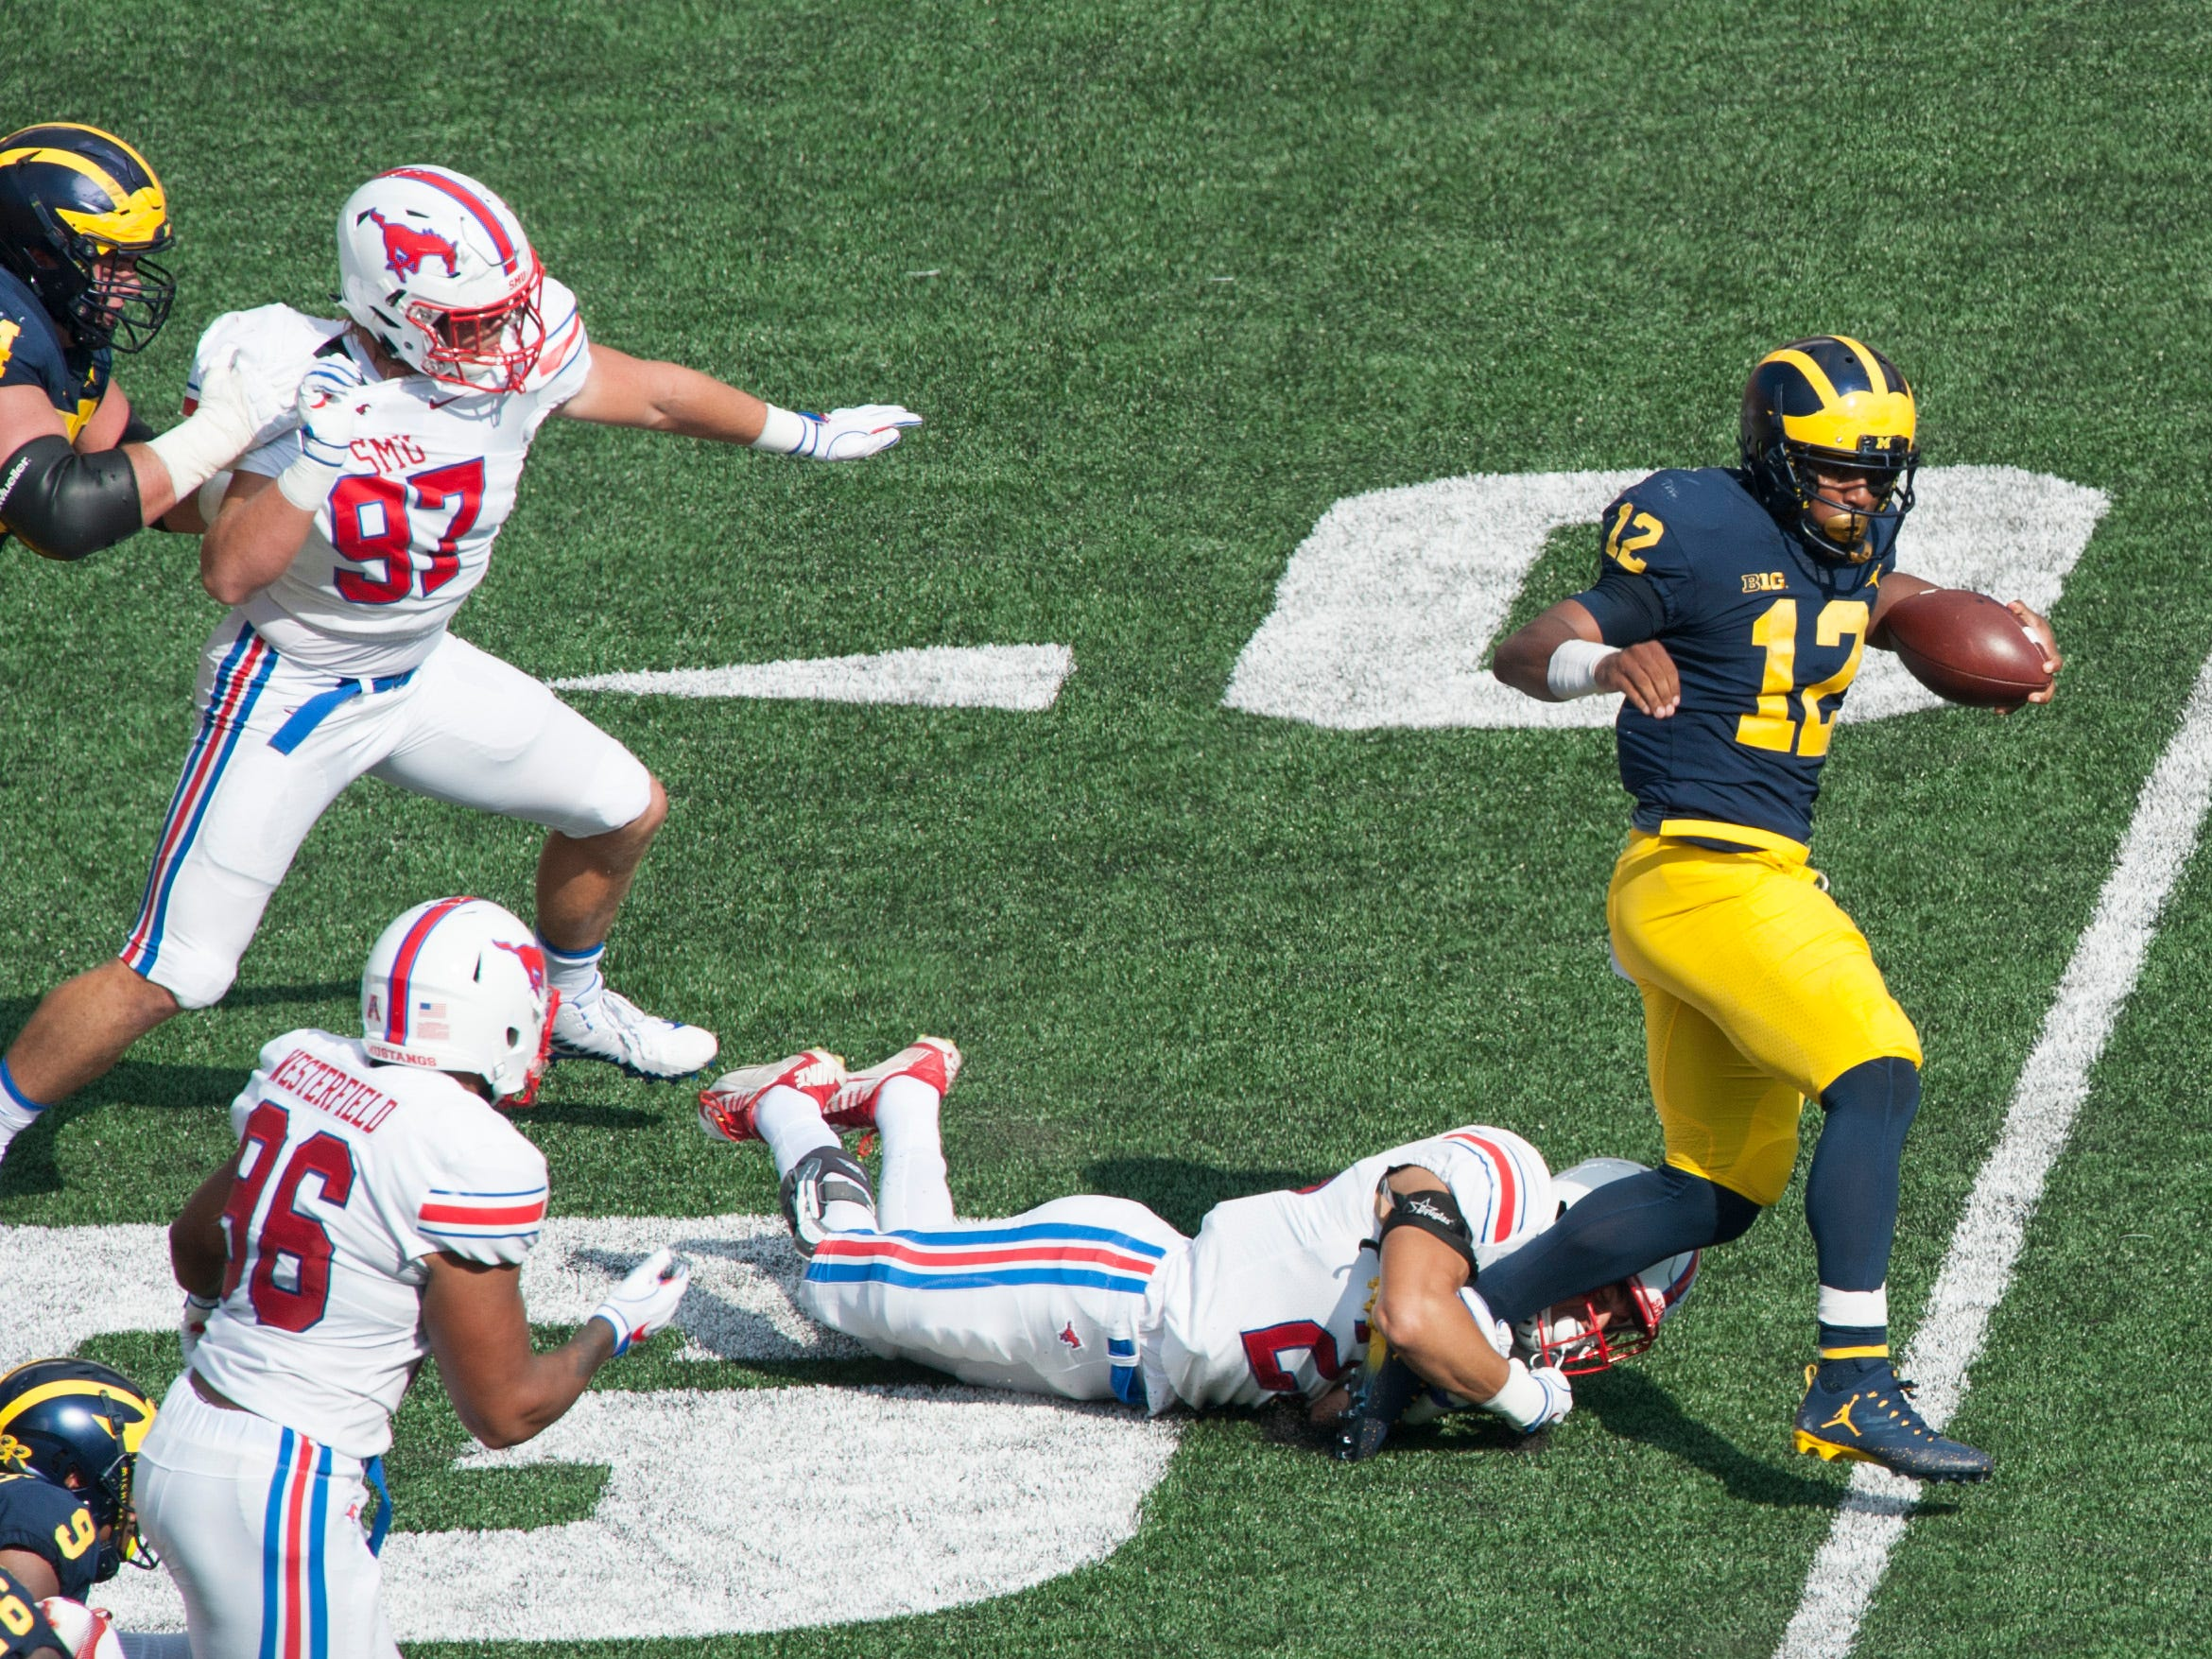 Michigan running back Chris Evans gains some yardage in the first quarter.